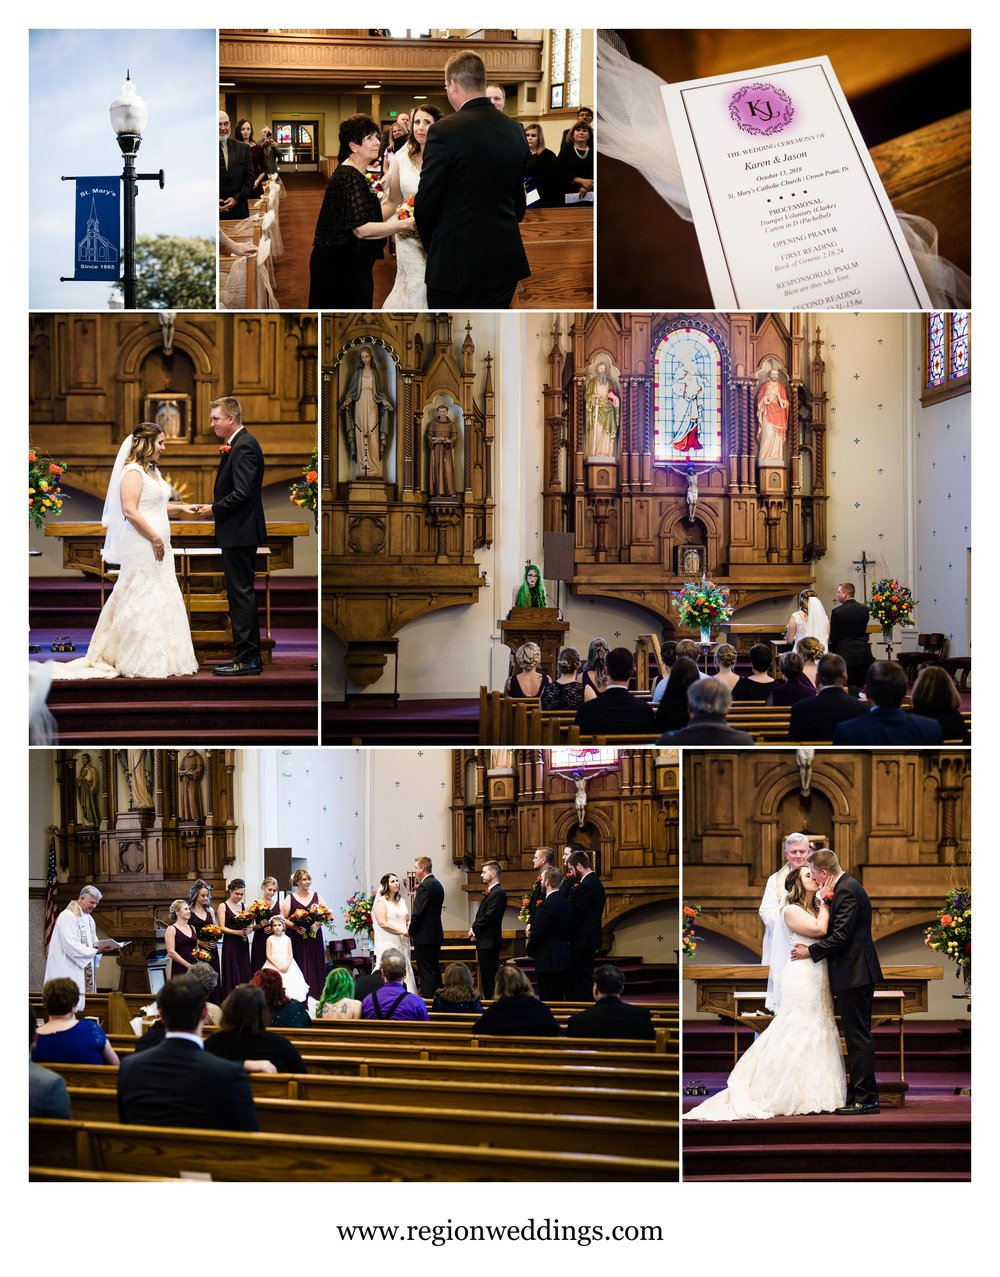 Catholic wedding ceremony at St. Mary in Crown Point, Indiana.